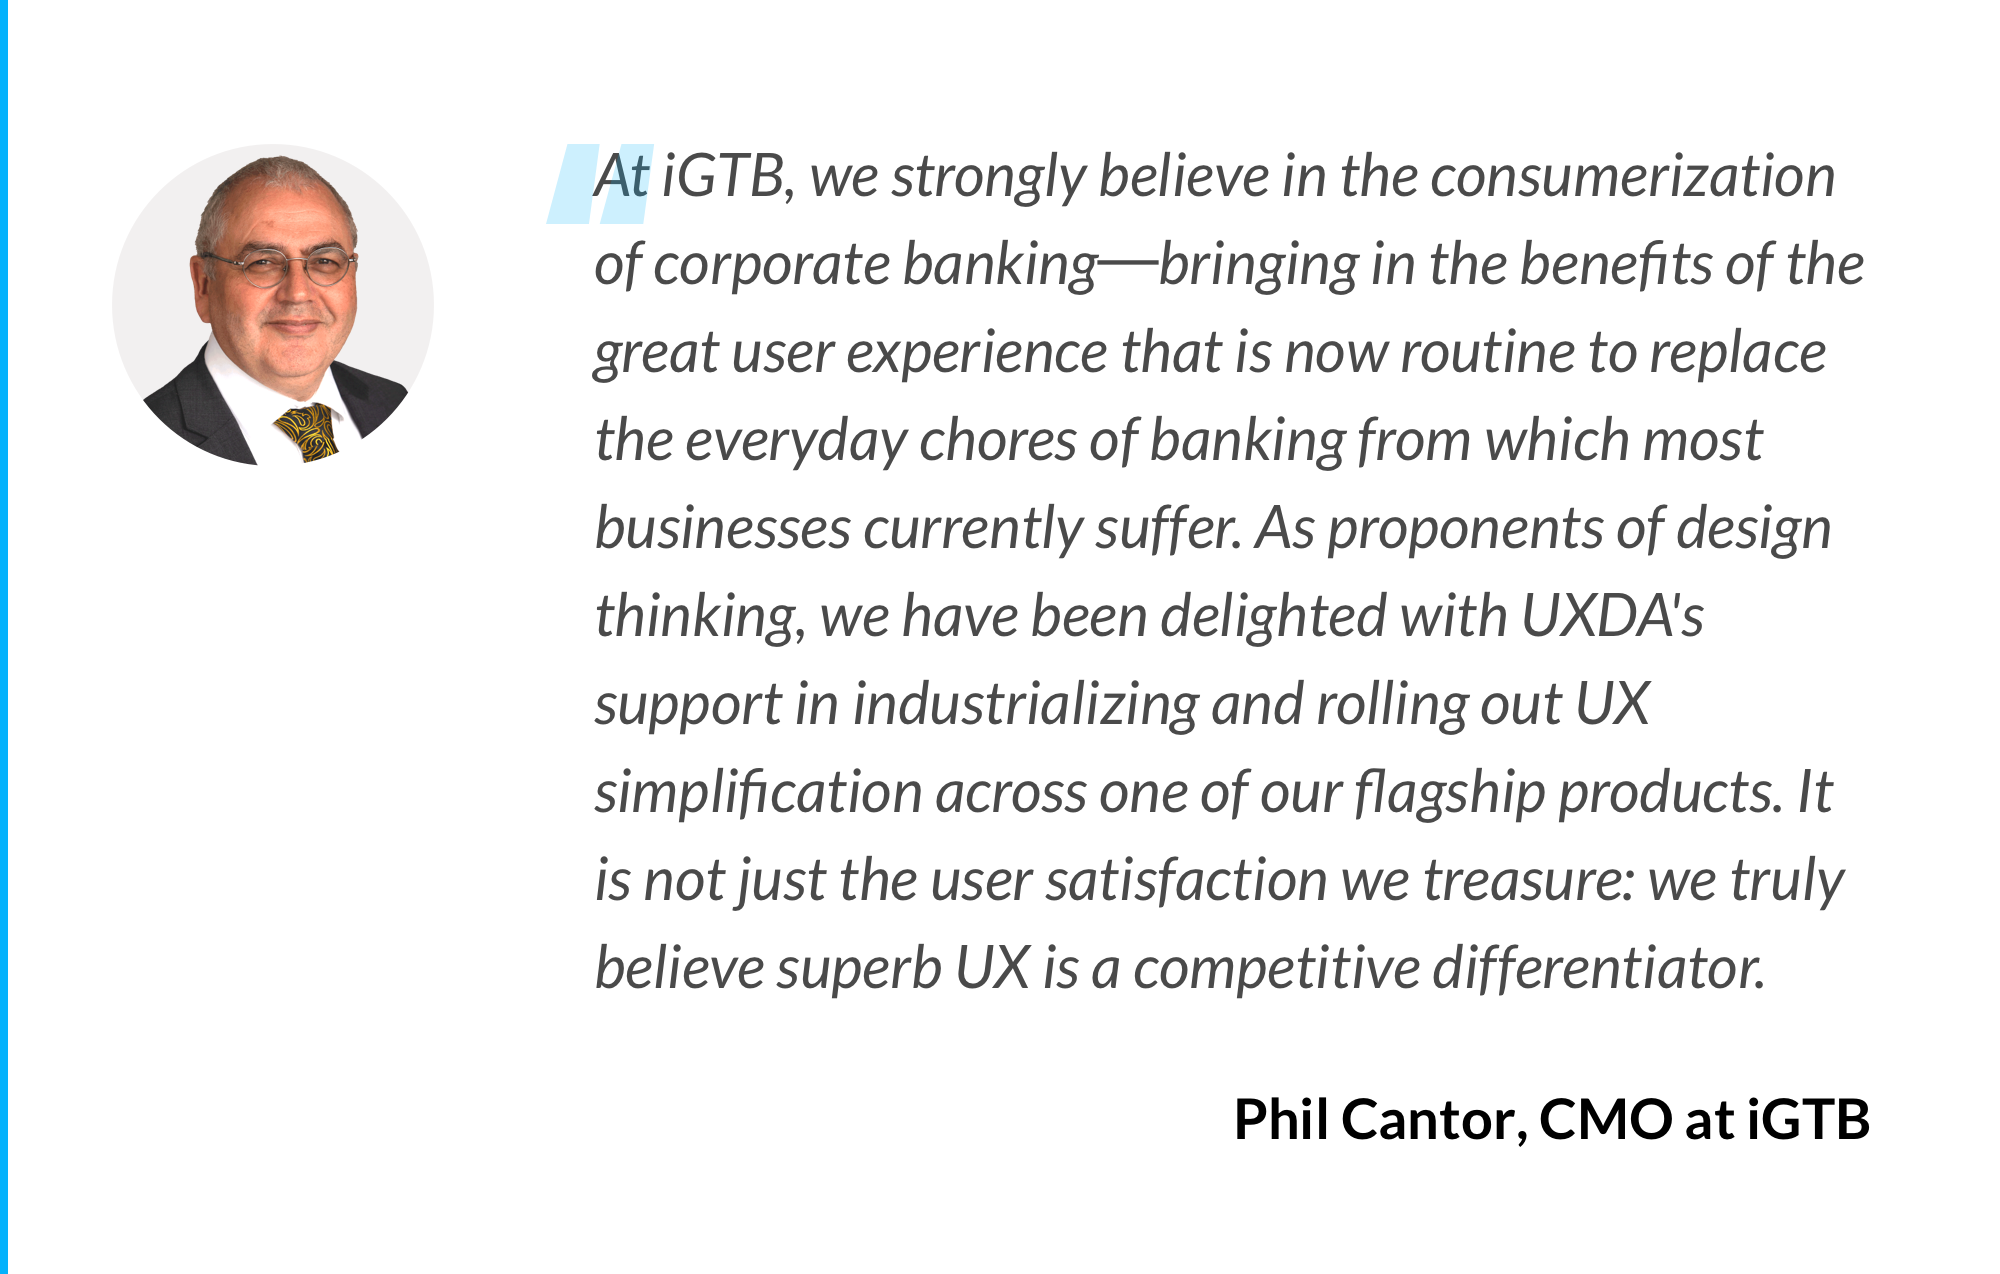 igtb-case-study-quote-phil-cantor-at-2x.png